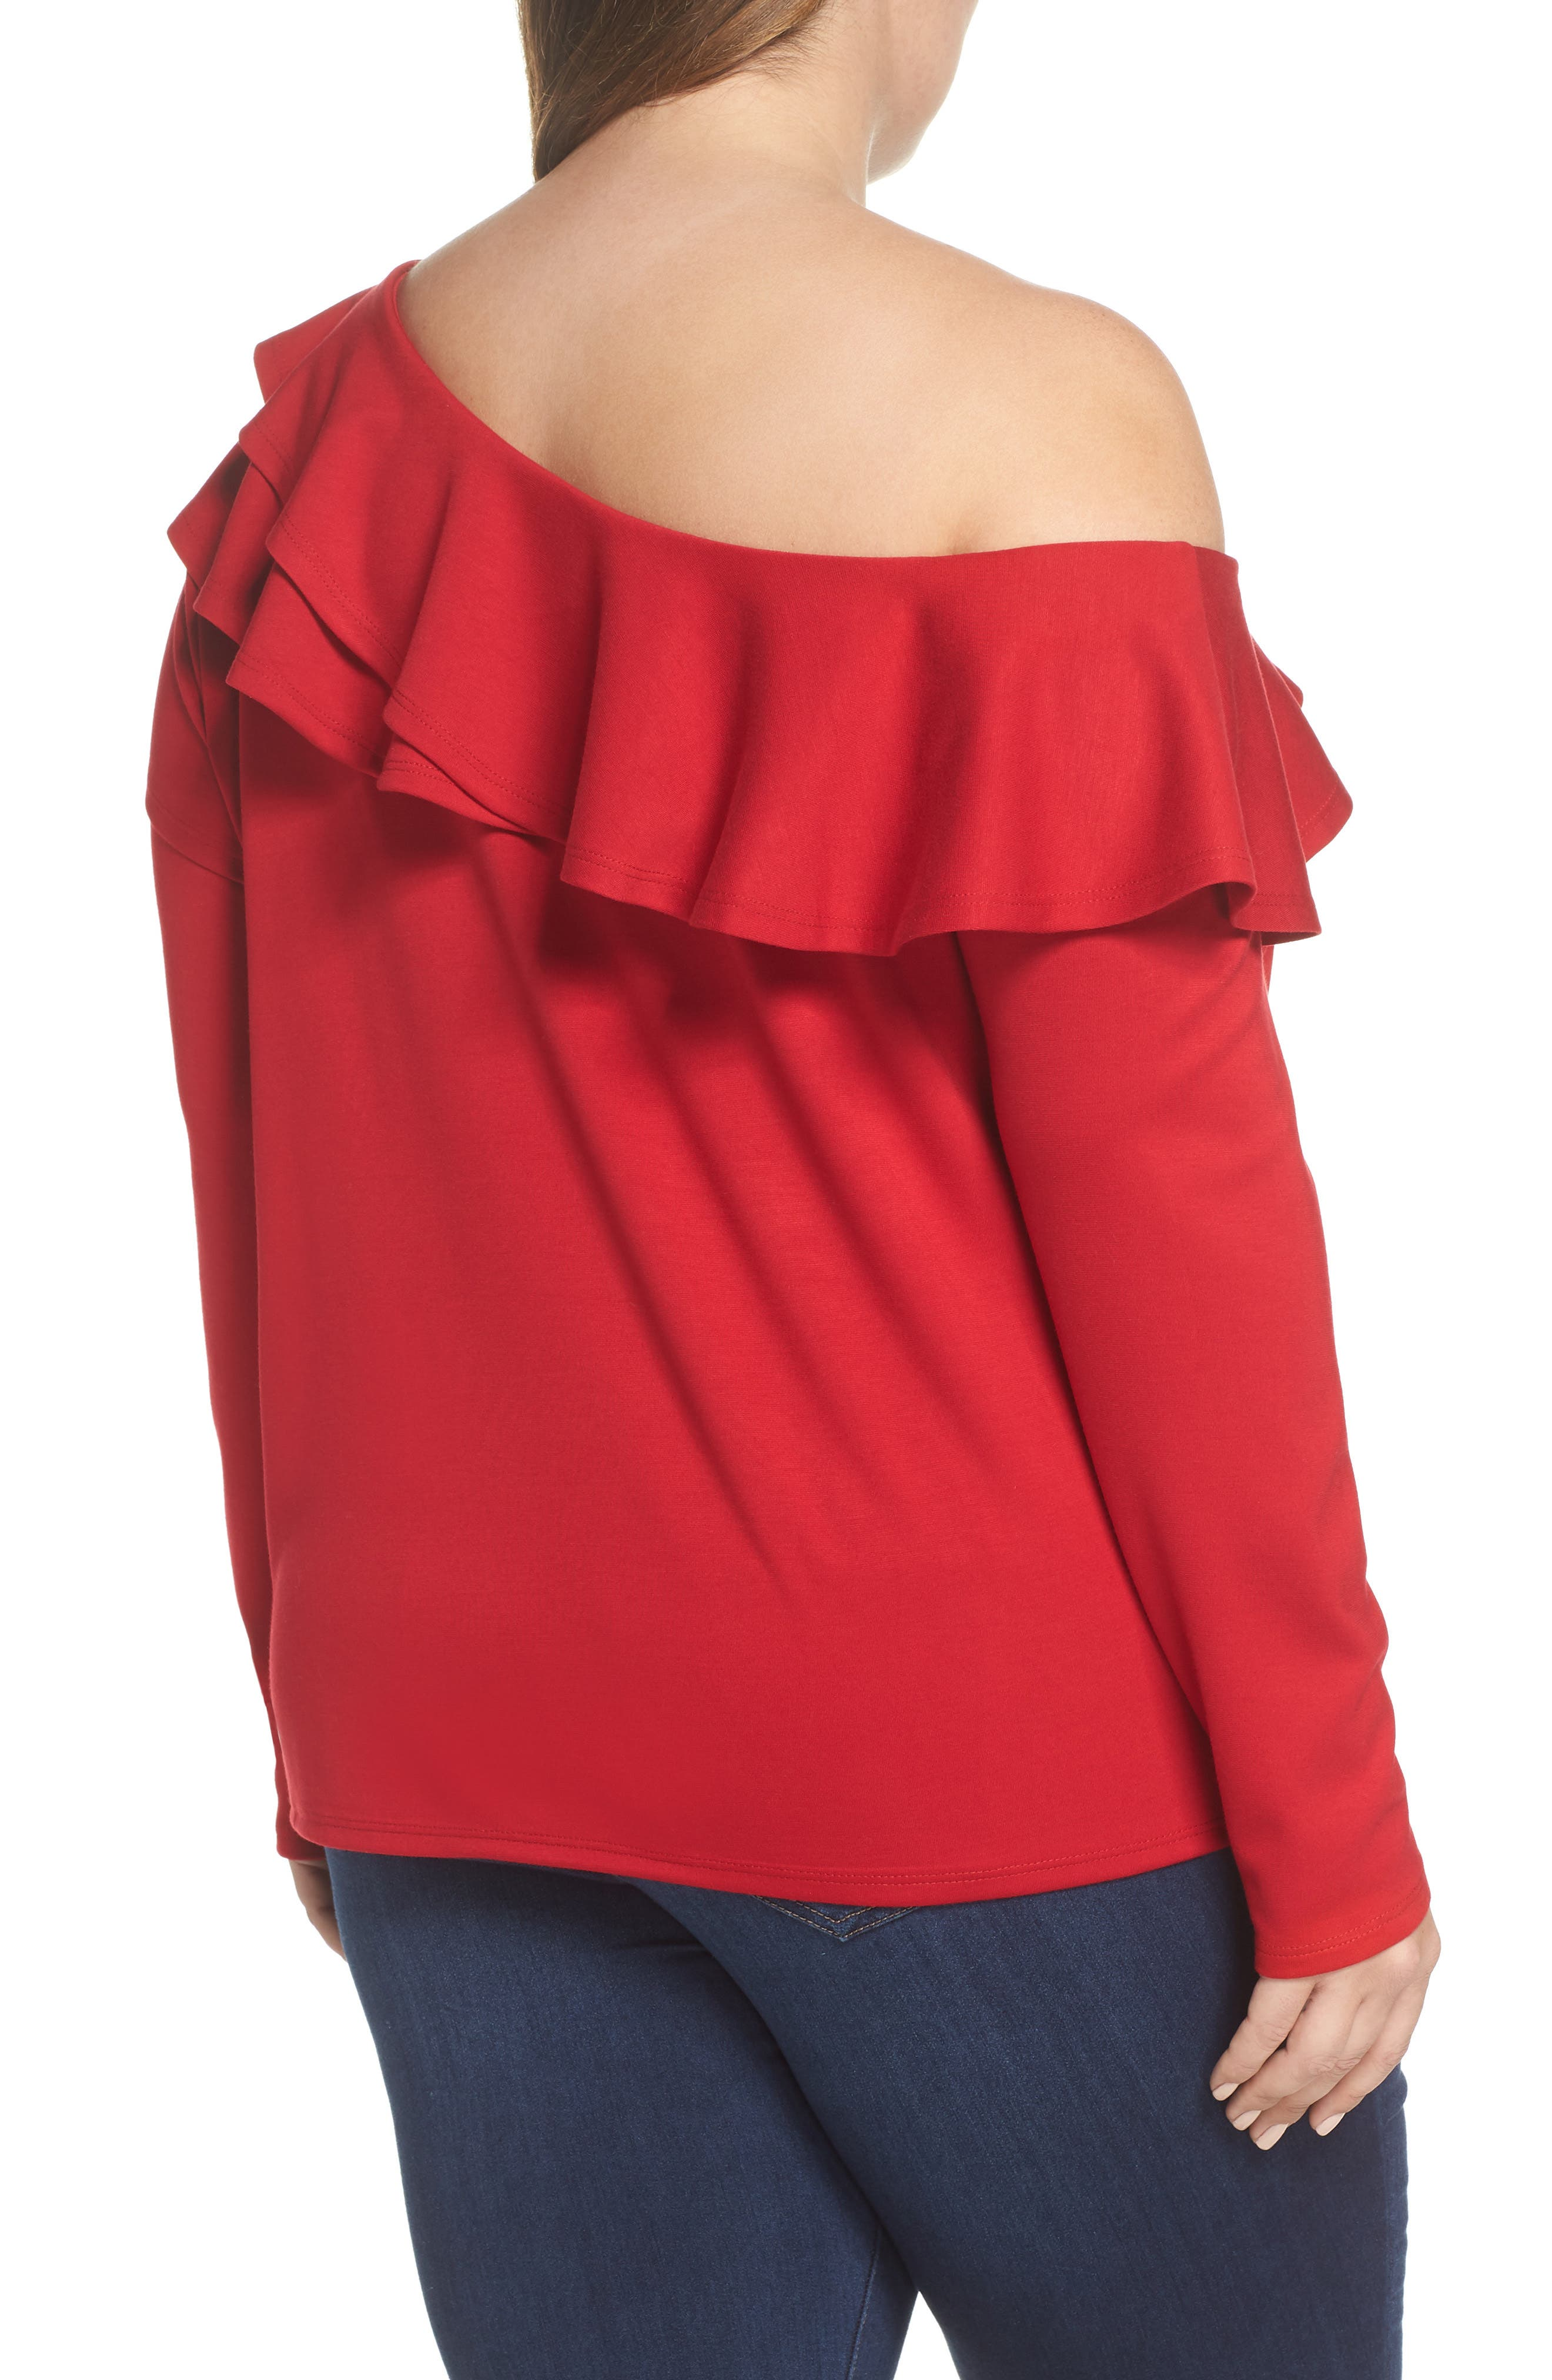 x Living in Yellow Elizabeth One-Shoulder Ruffle Top,                             Alternate thumbnail 6, color,                             Red